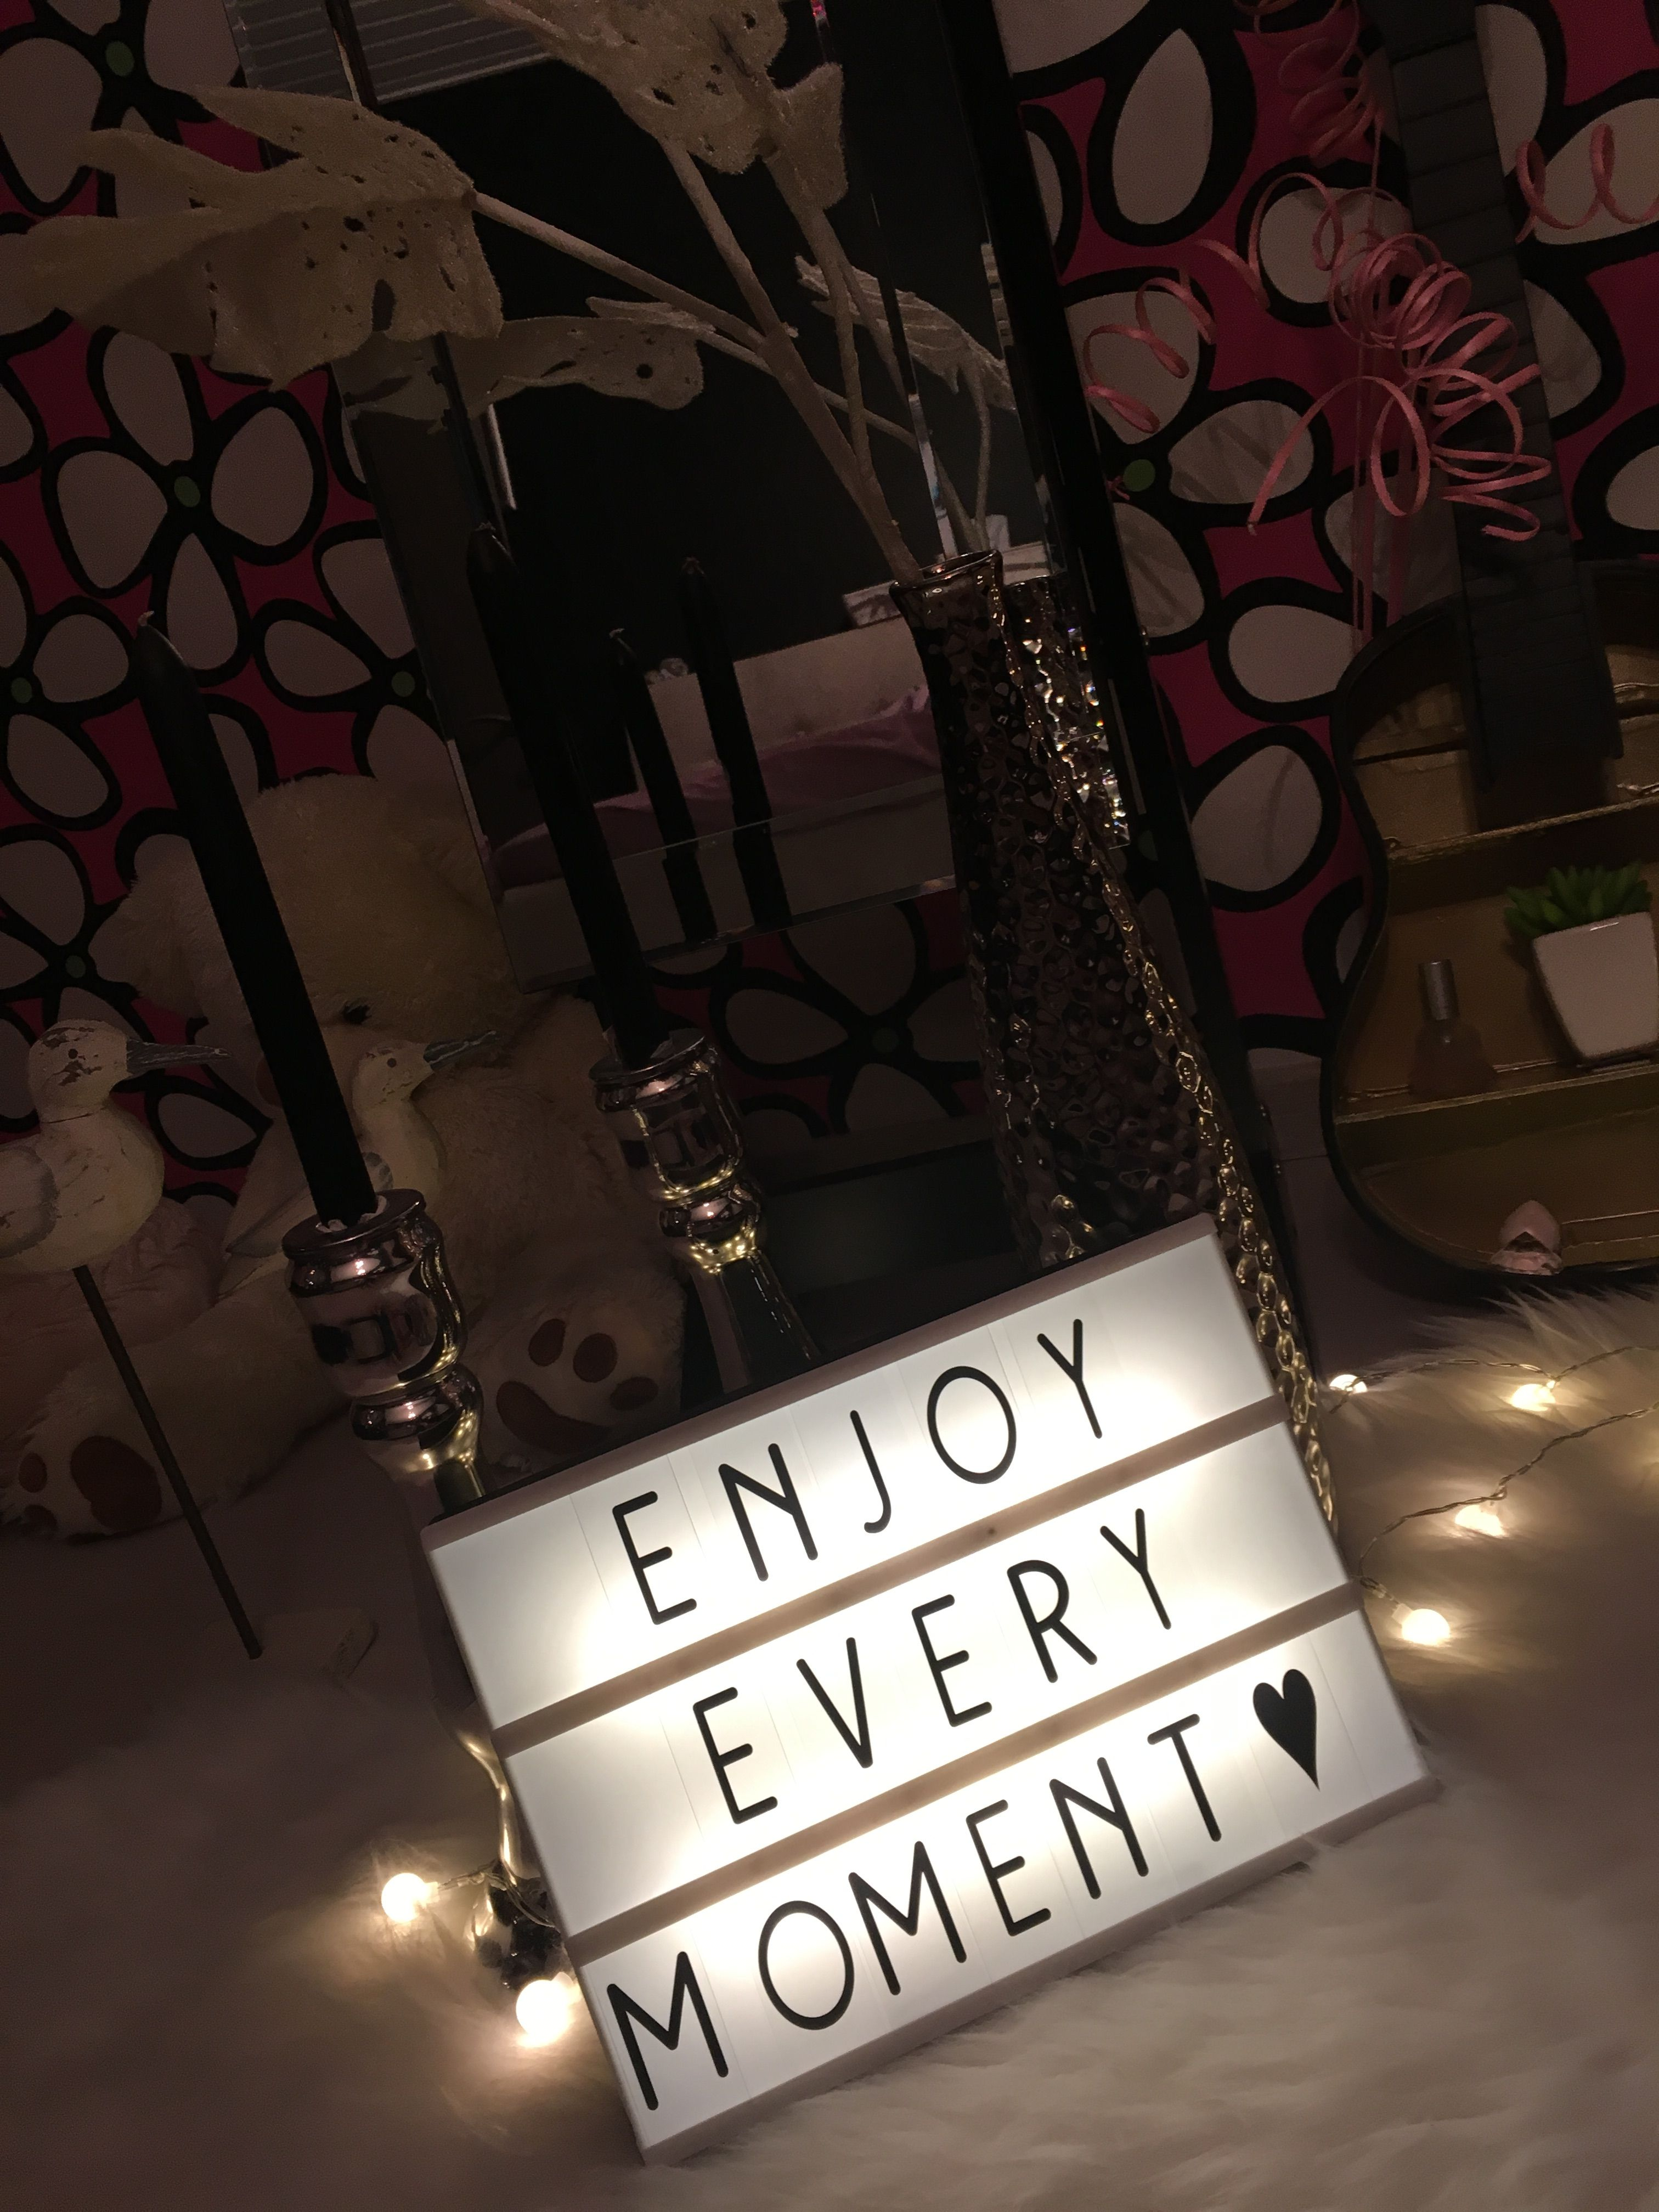 Lightbox Quotes Enjoy Every Moment Lightbox Quote Light Box Quotes Cinema Light Box Quotes Light Letters